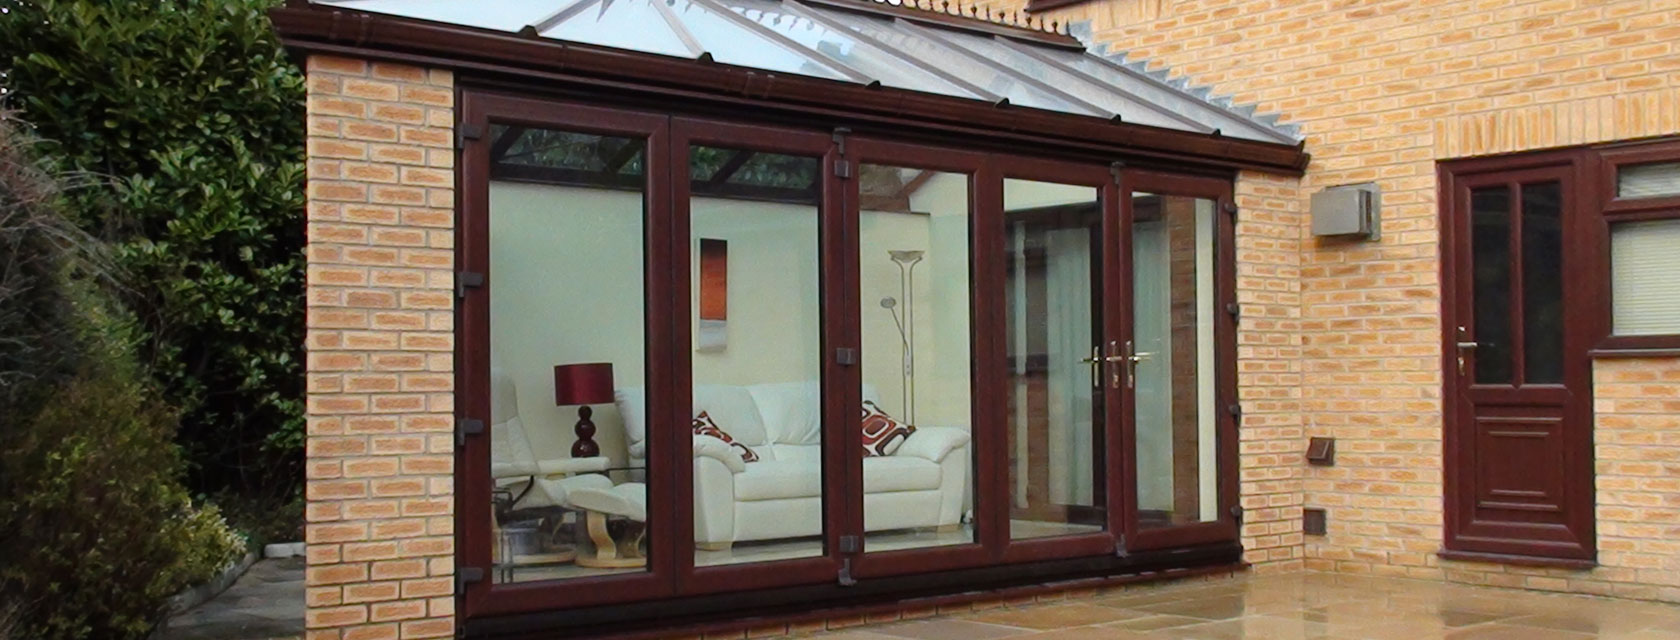 Victorian Conservatory Extension